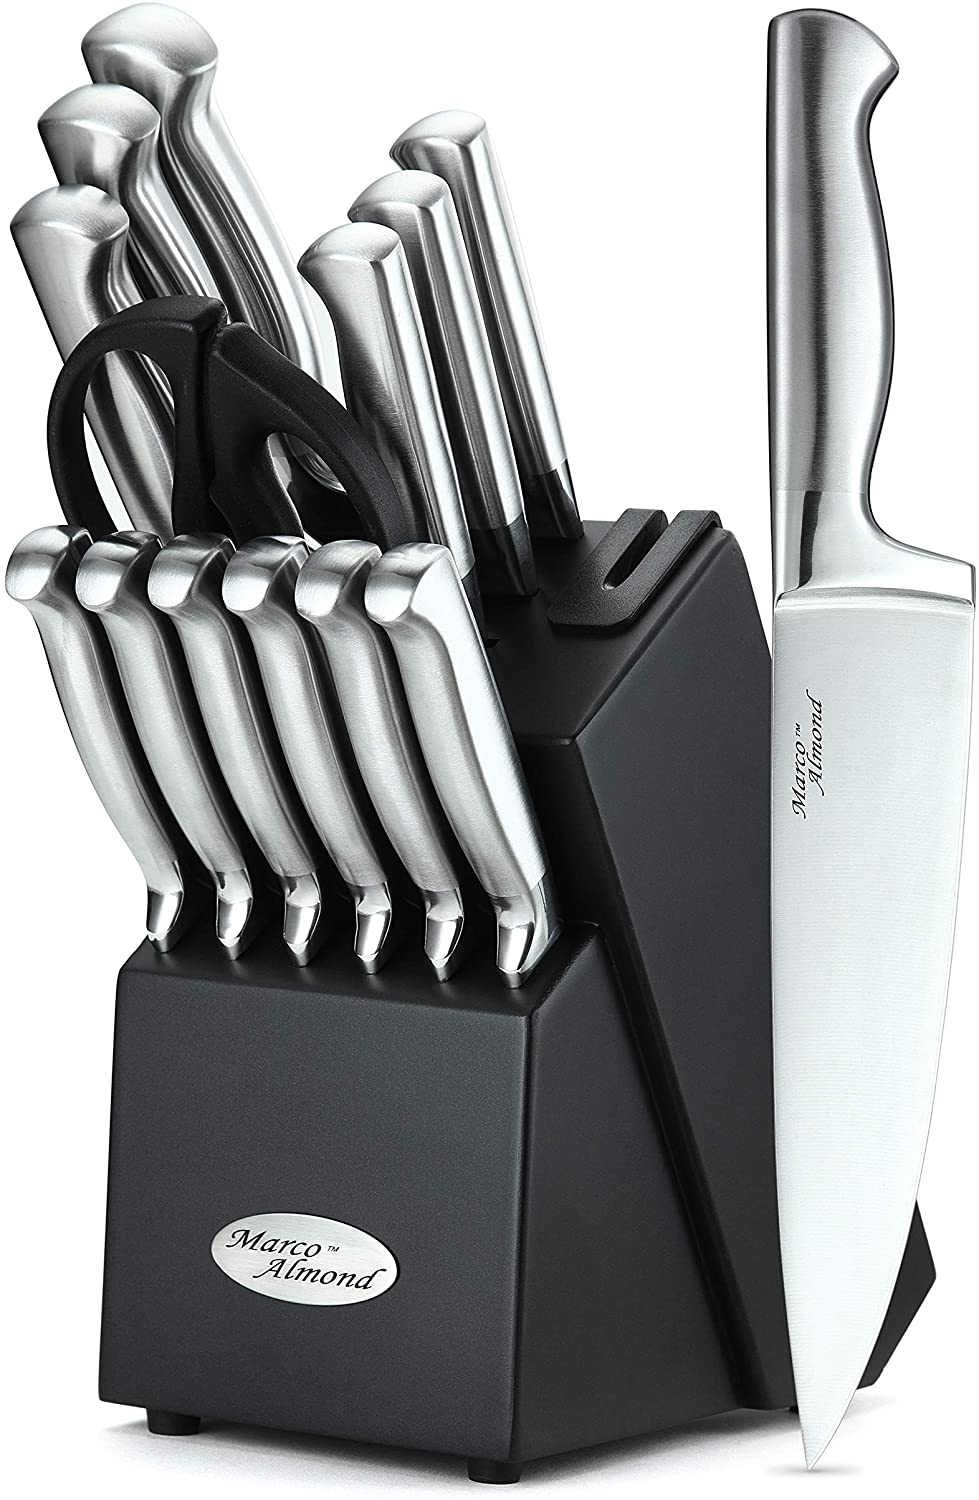 Marco Almond KYA28 Knives Set, 14 Pieces Japanese High Carbon Stainless Steel Kitchen Cutlery Knife Set with Hardwood Block, Hollow Handle Self Sharpening Knife Block Set, Black, Best Gift